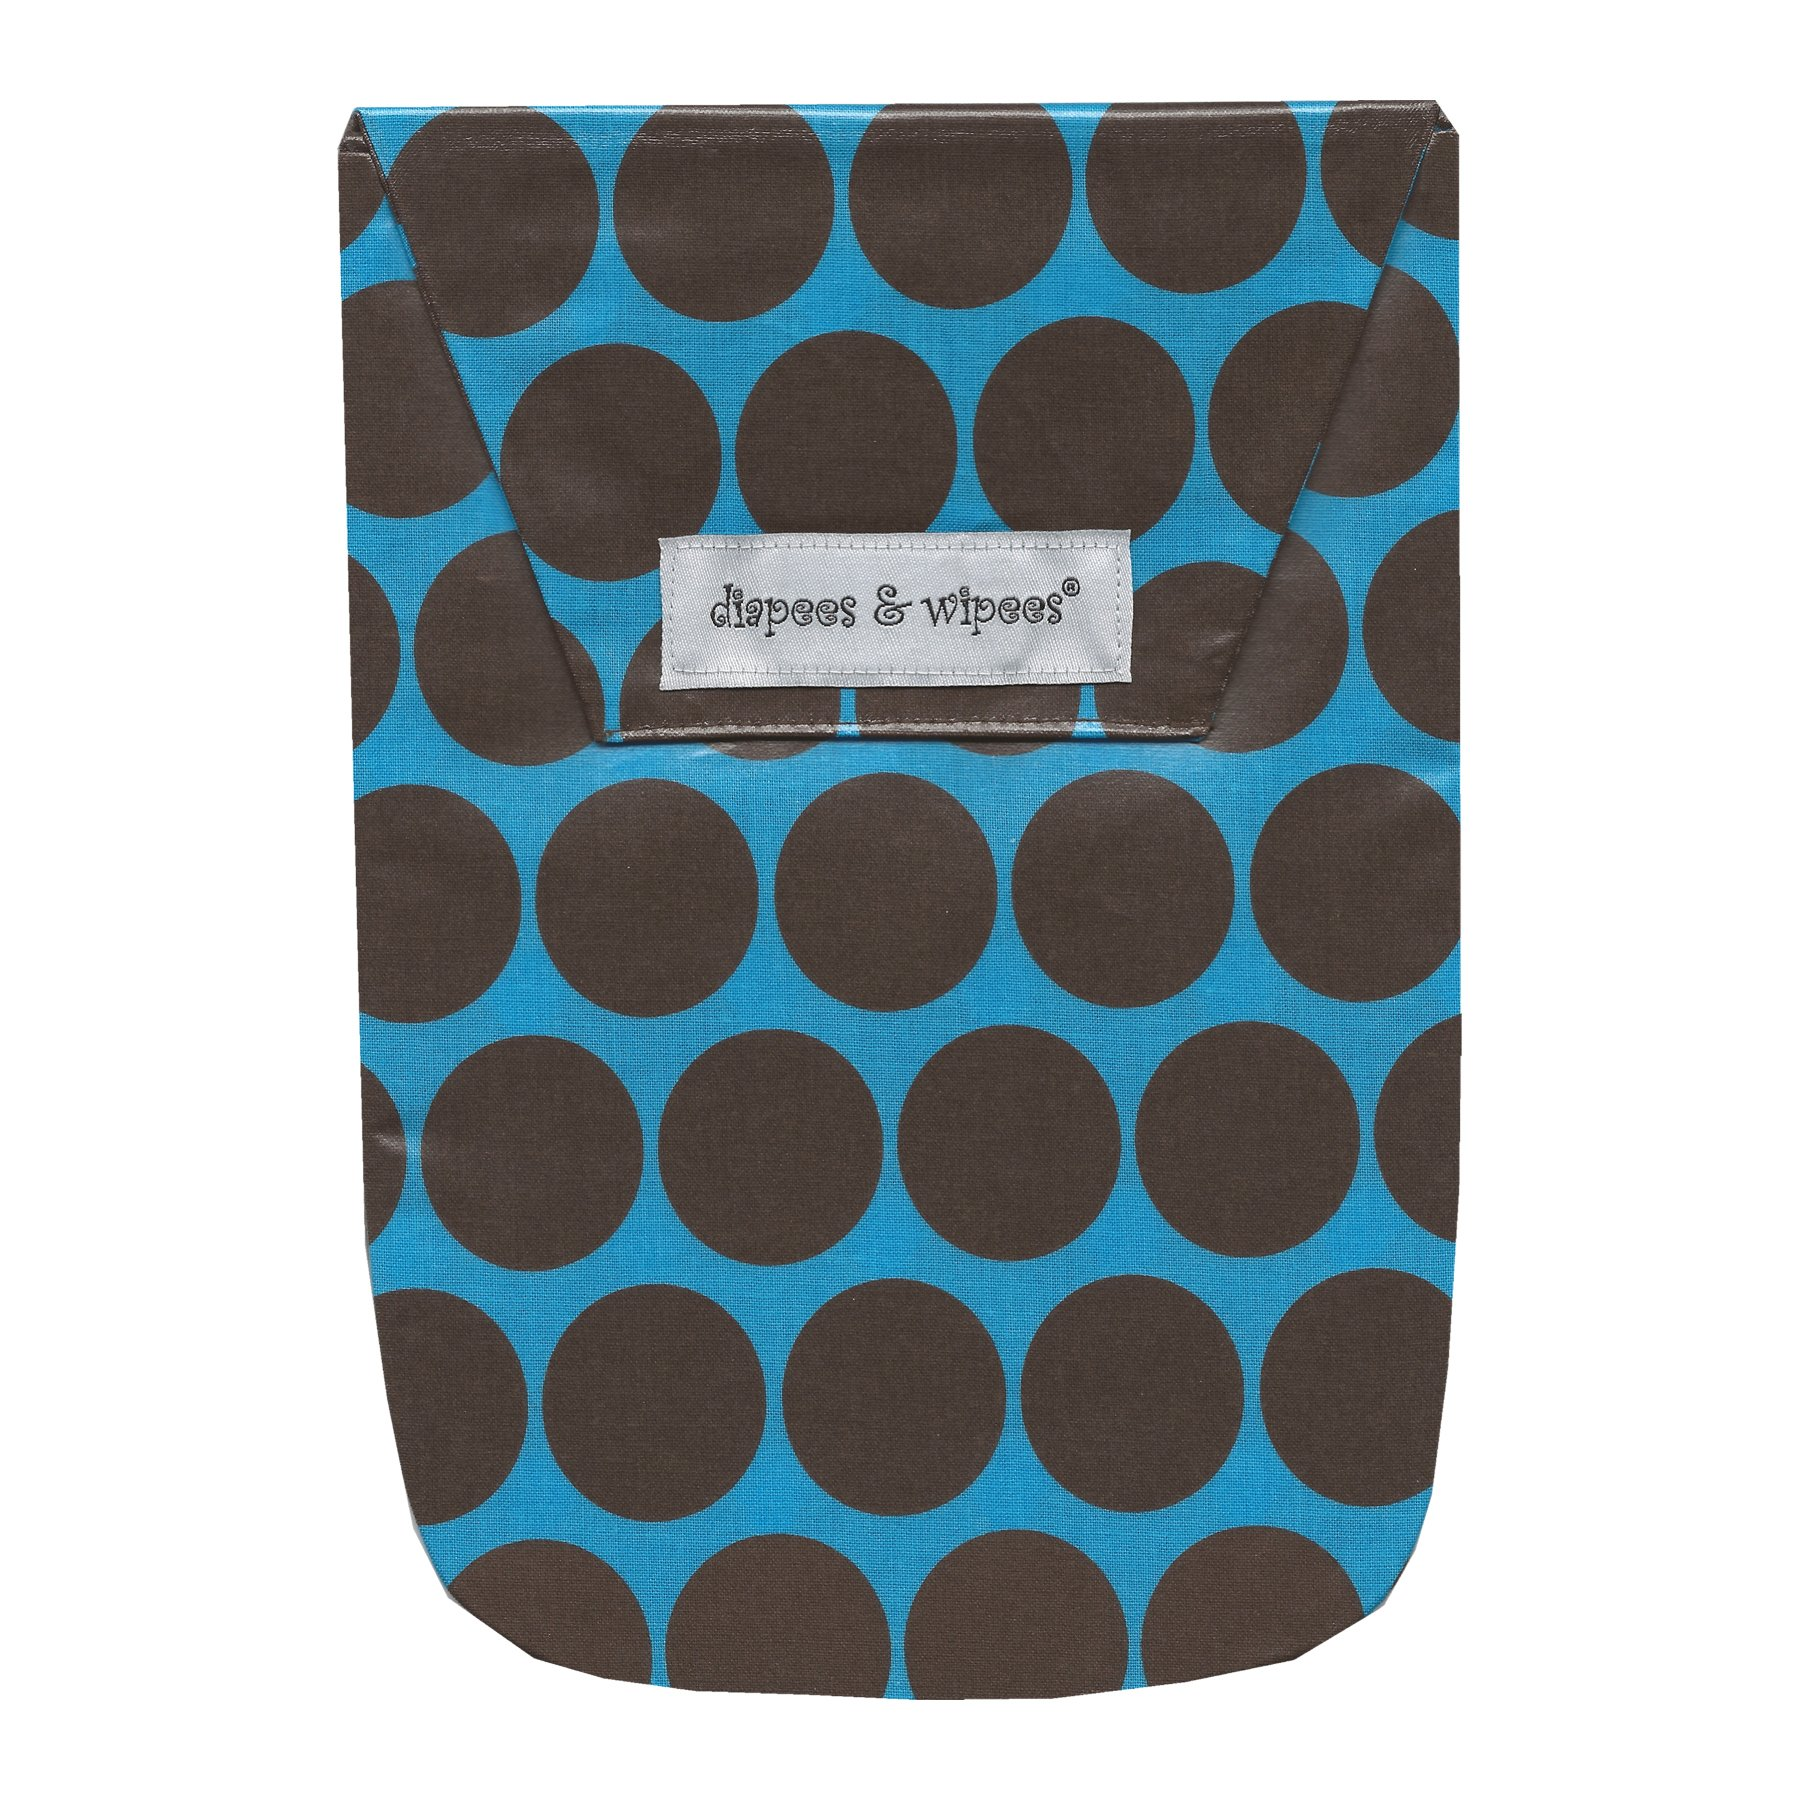 Diapees & Wipees Laminated Bag w/Wipes Case - Blue Polka Dots